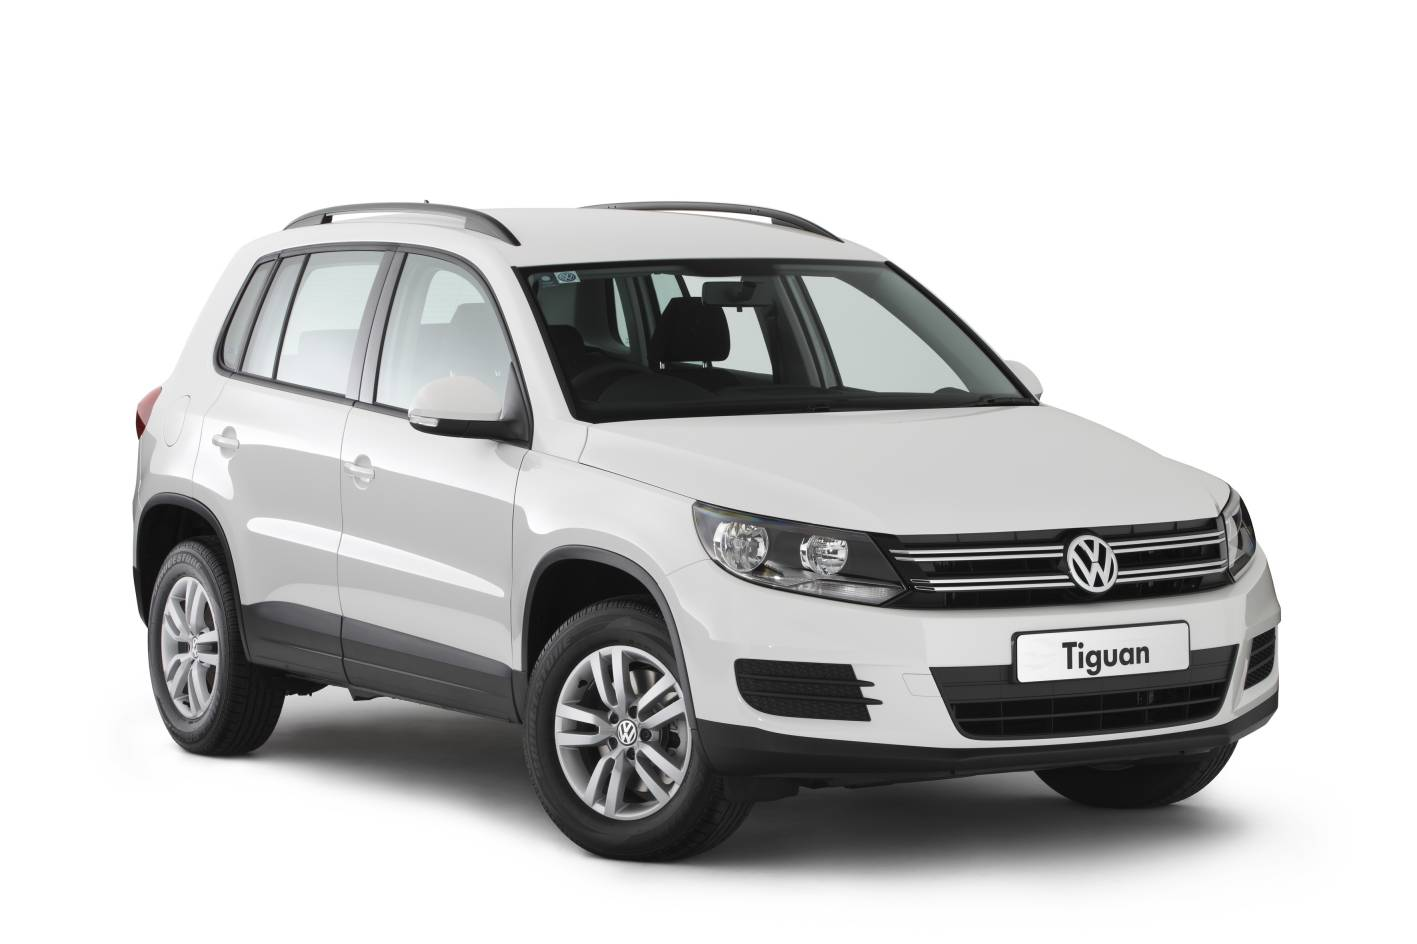 review 2012 volkswagen tiguan 118tsi review and road test